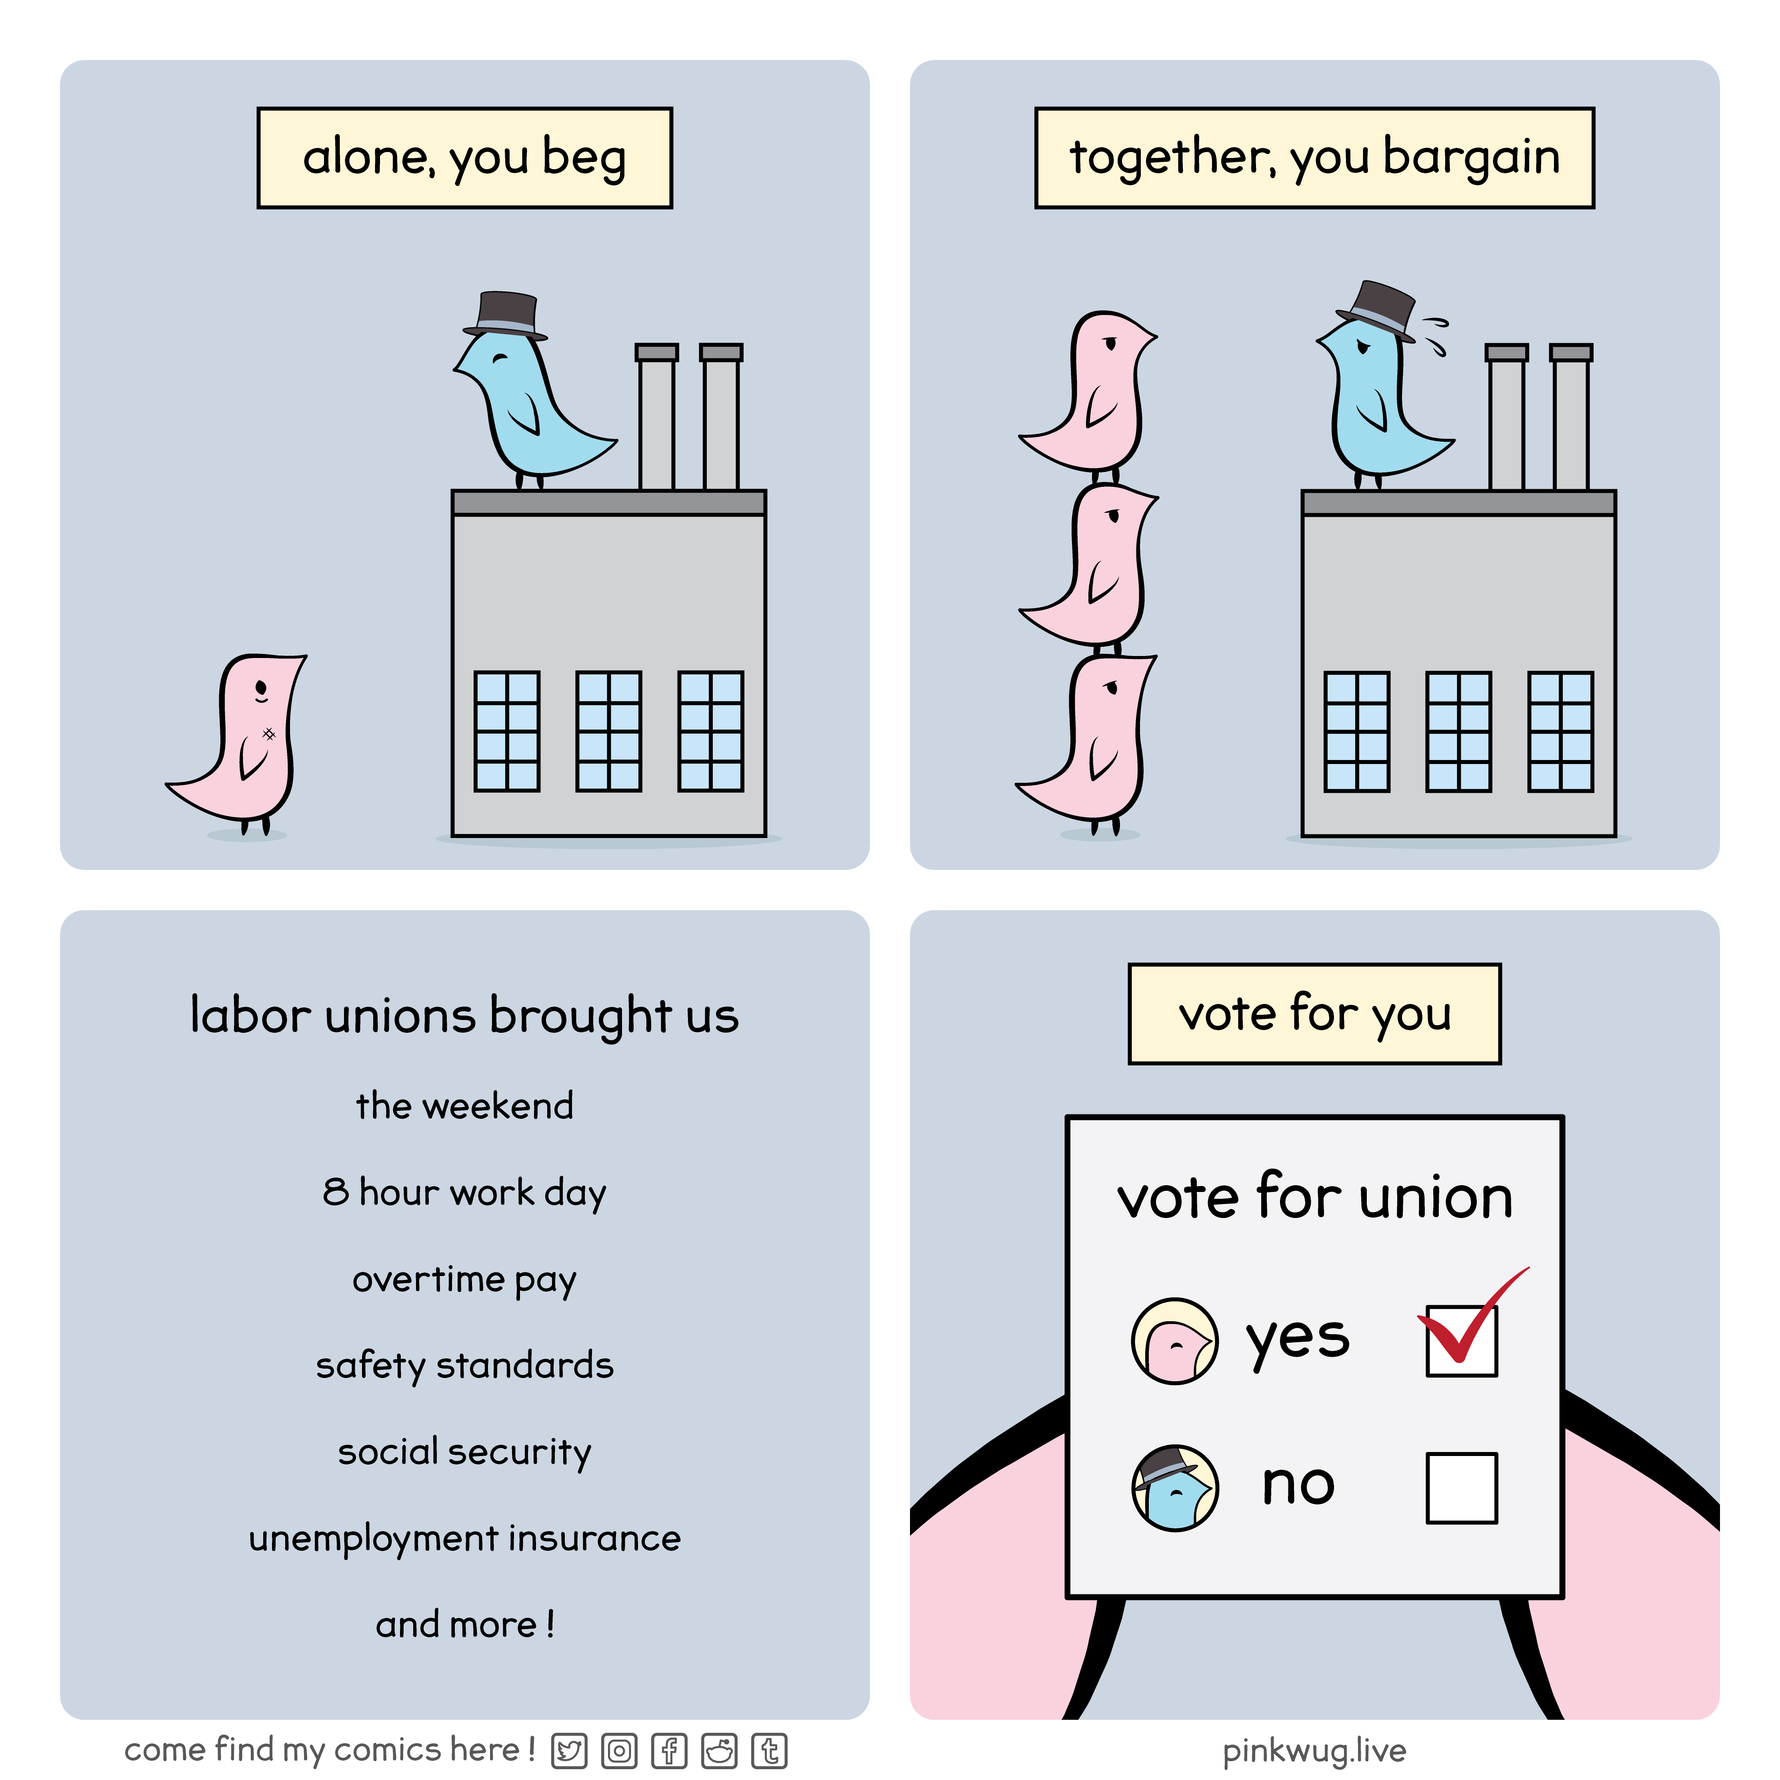 """pinkwug comic: """"Alone you beg, together you bargain"""" as workers on top of each other see eye to eye with the factory owner Labor unions brought us the weekend, 8 hour work day, overtime pay, safety standards, social security, unemployment insurance and more! Vote yes for union"""